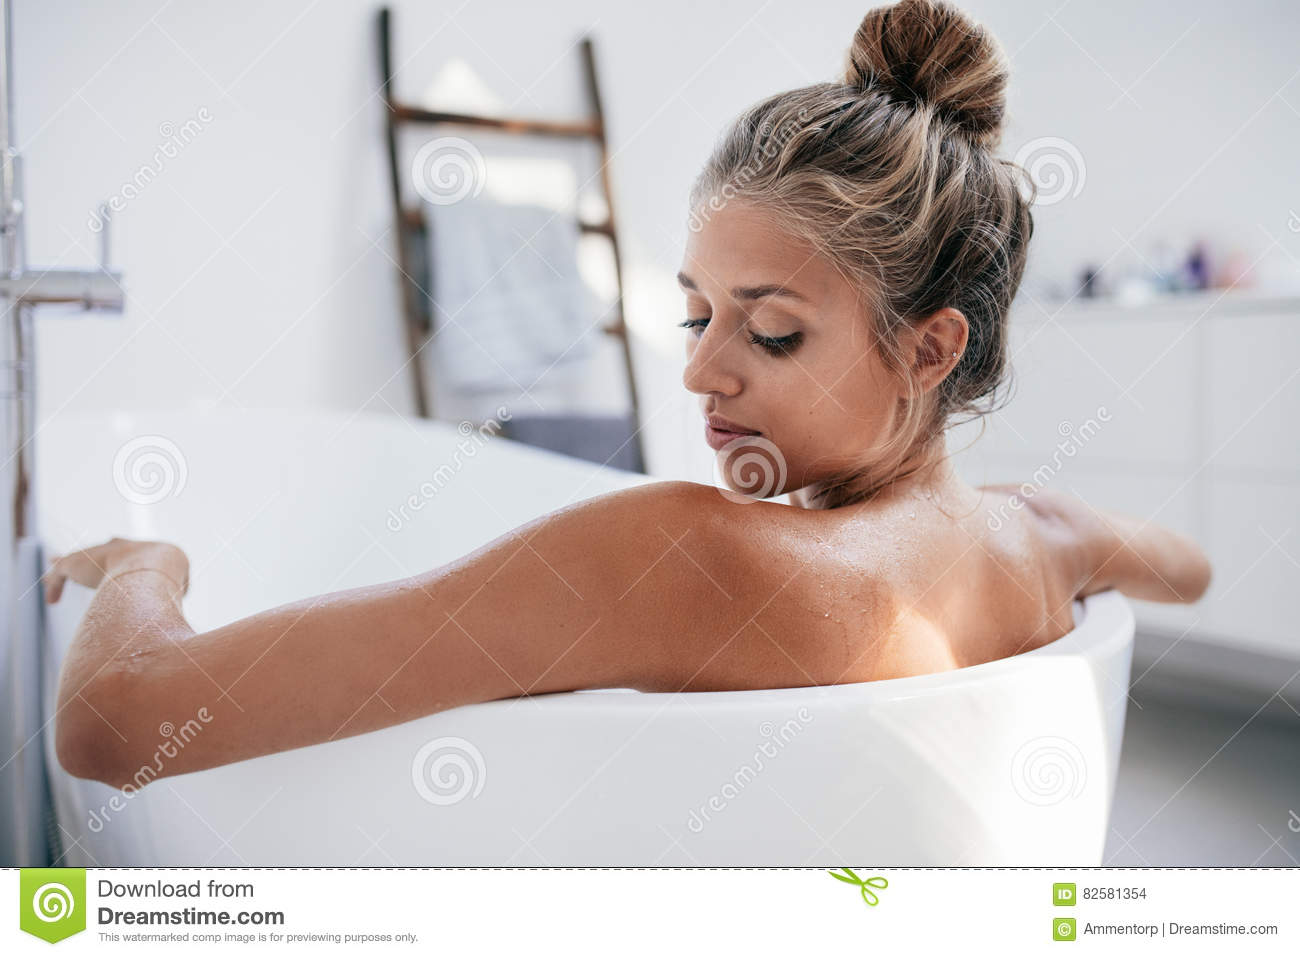 Young Woman Bathing In Bathtub Stock Photo - Image of care, bath ...